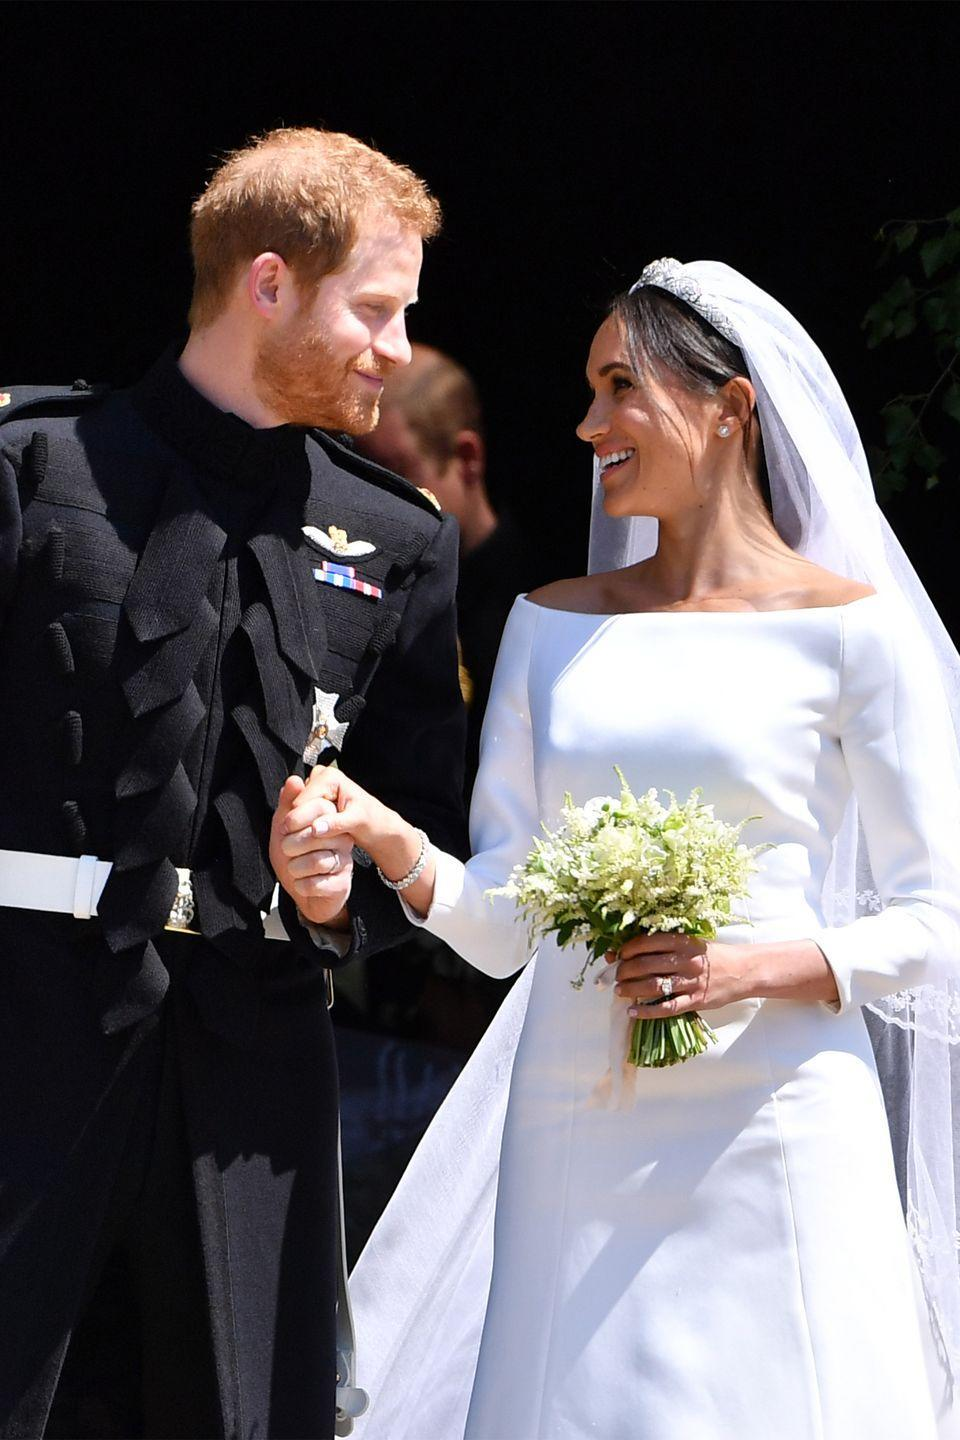 <p>Officially the Duke and Duchess of Sussex, Harry and Meghan gazed at each other as they exited St. George's Chapel in Windsor Castle after their wedding ceremony. </p>